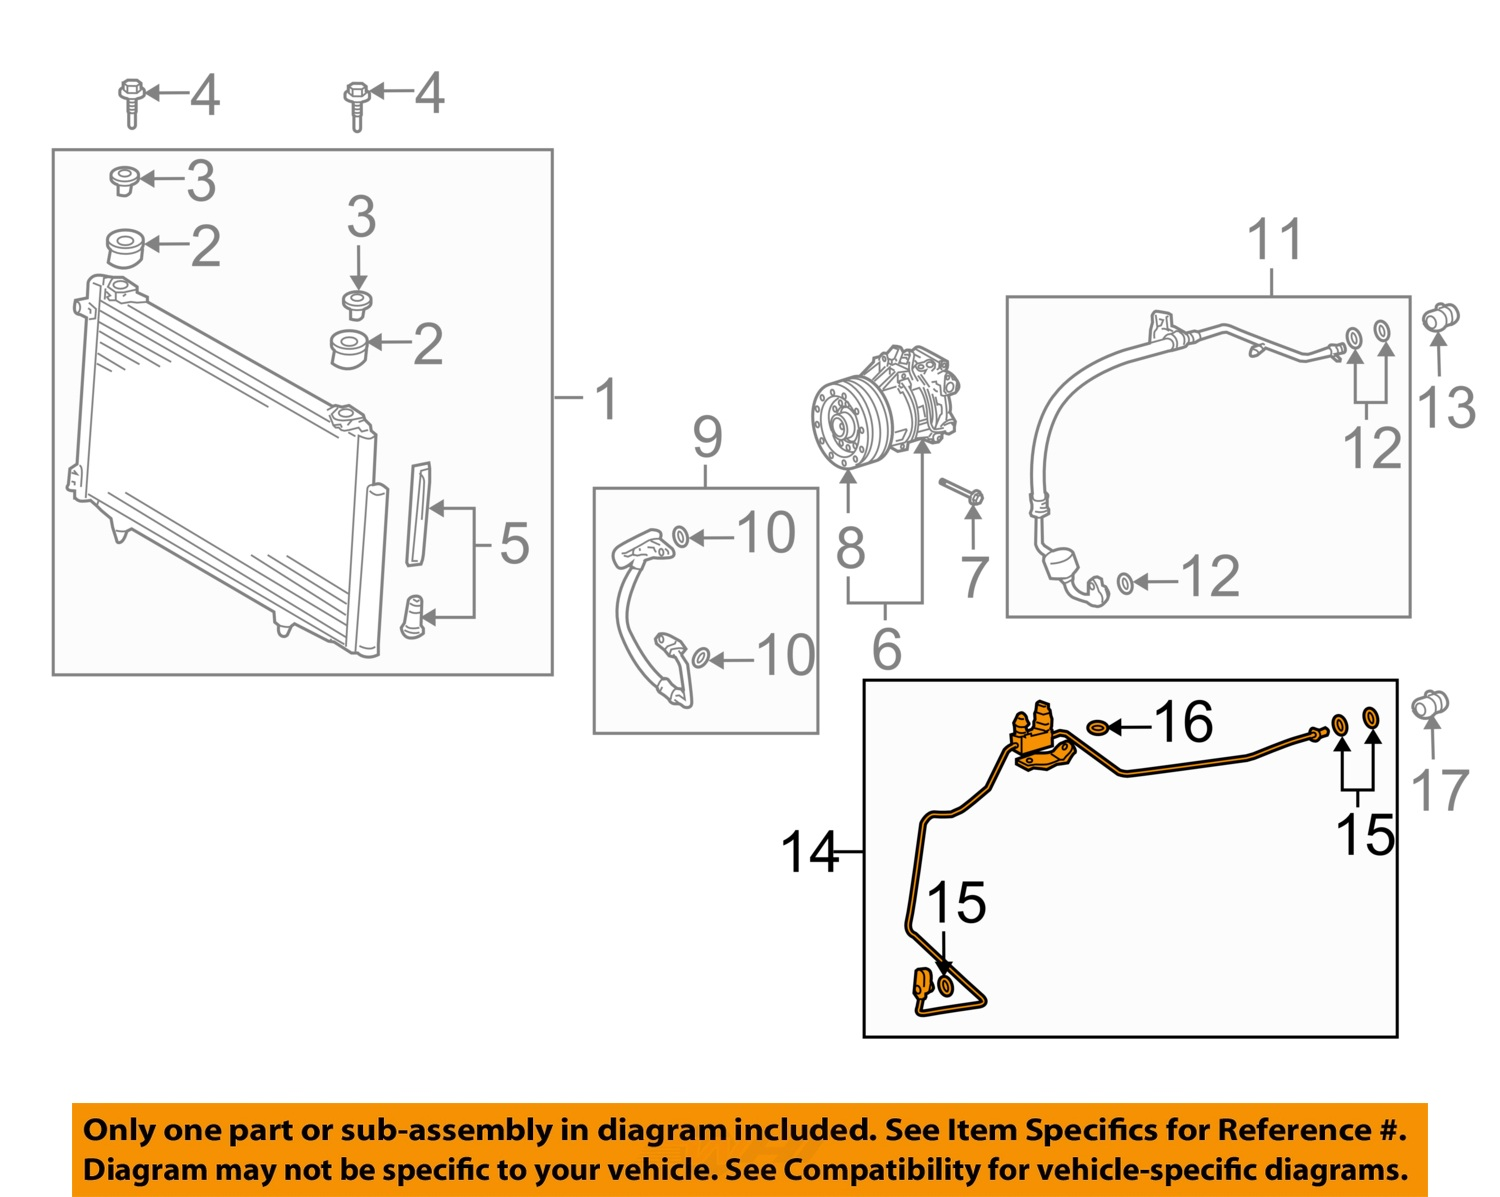 Scion xa fuse box diagram saturn astra